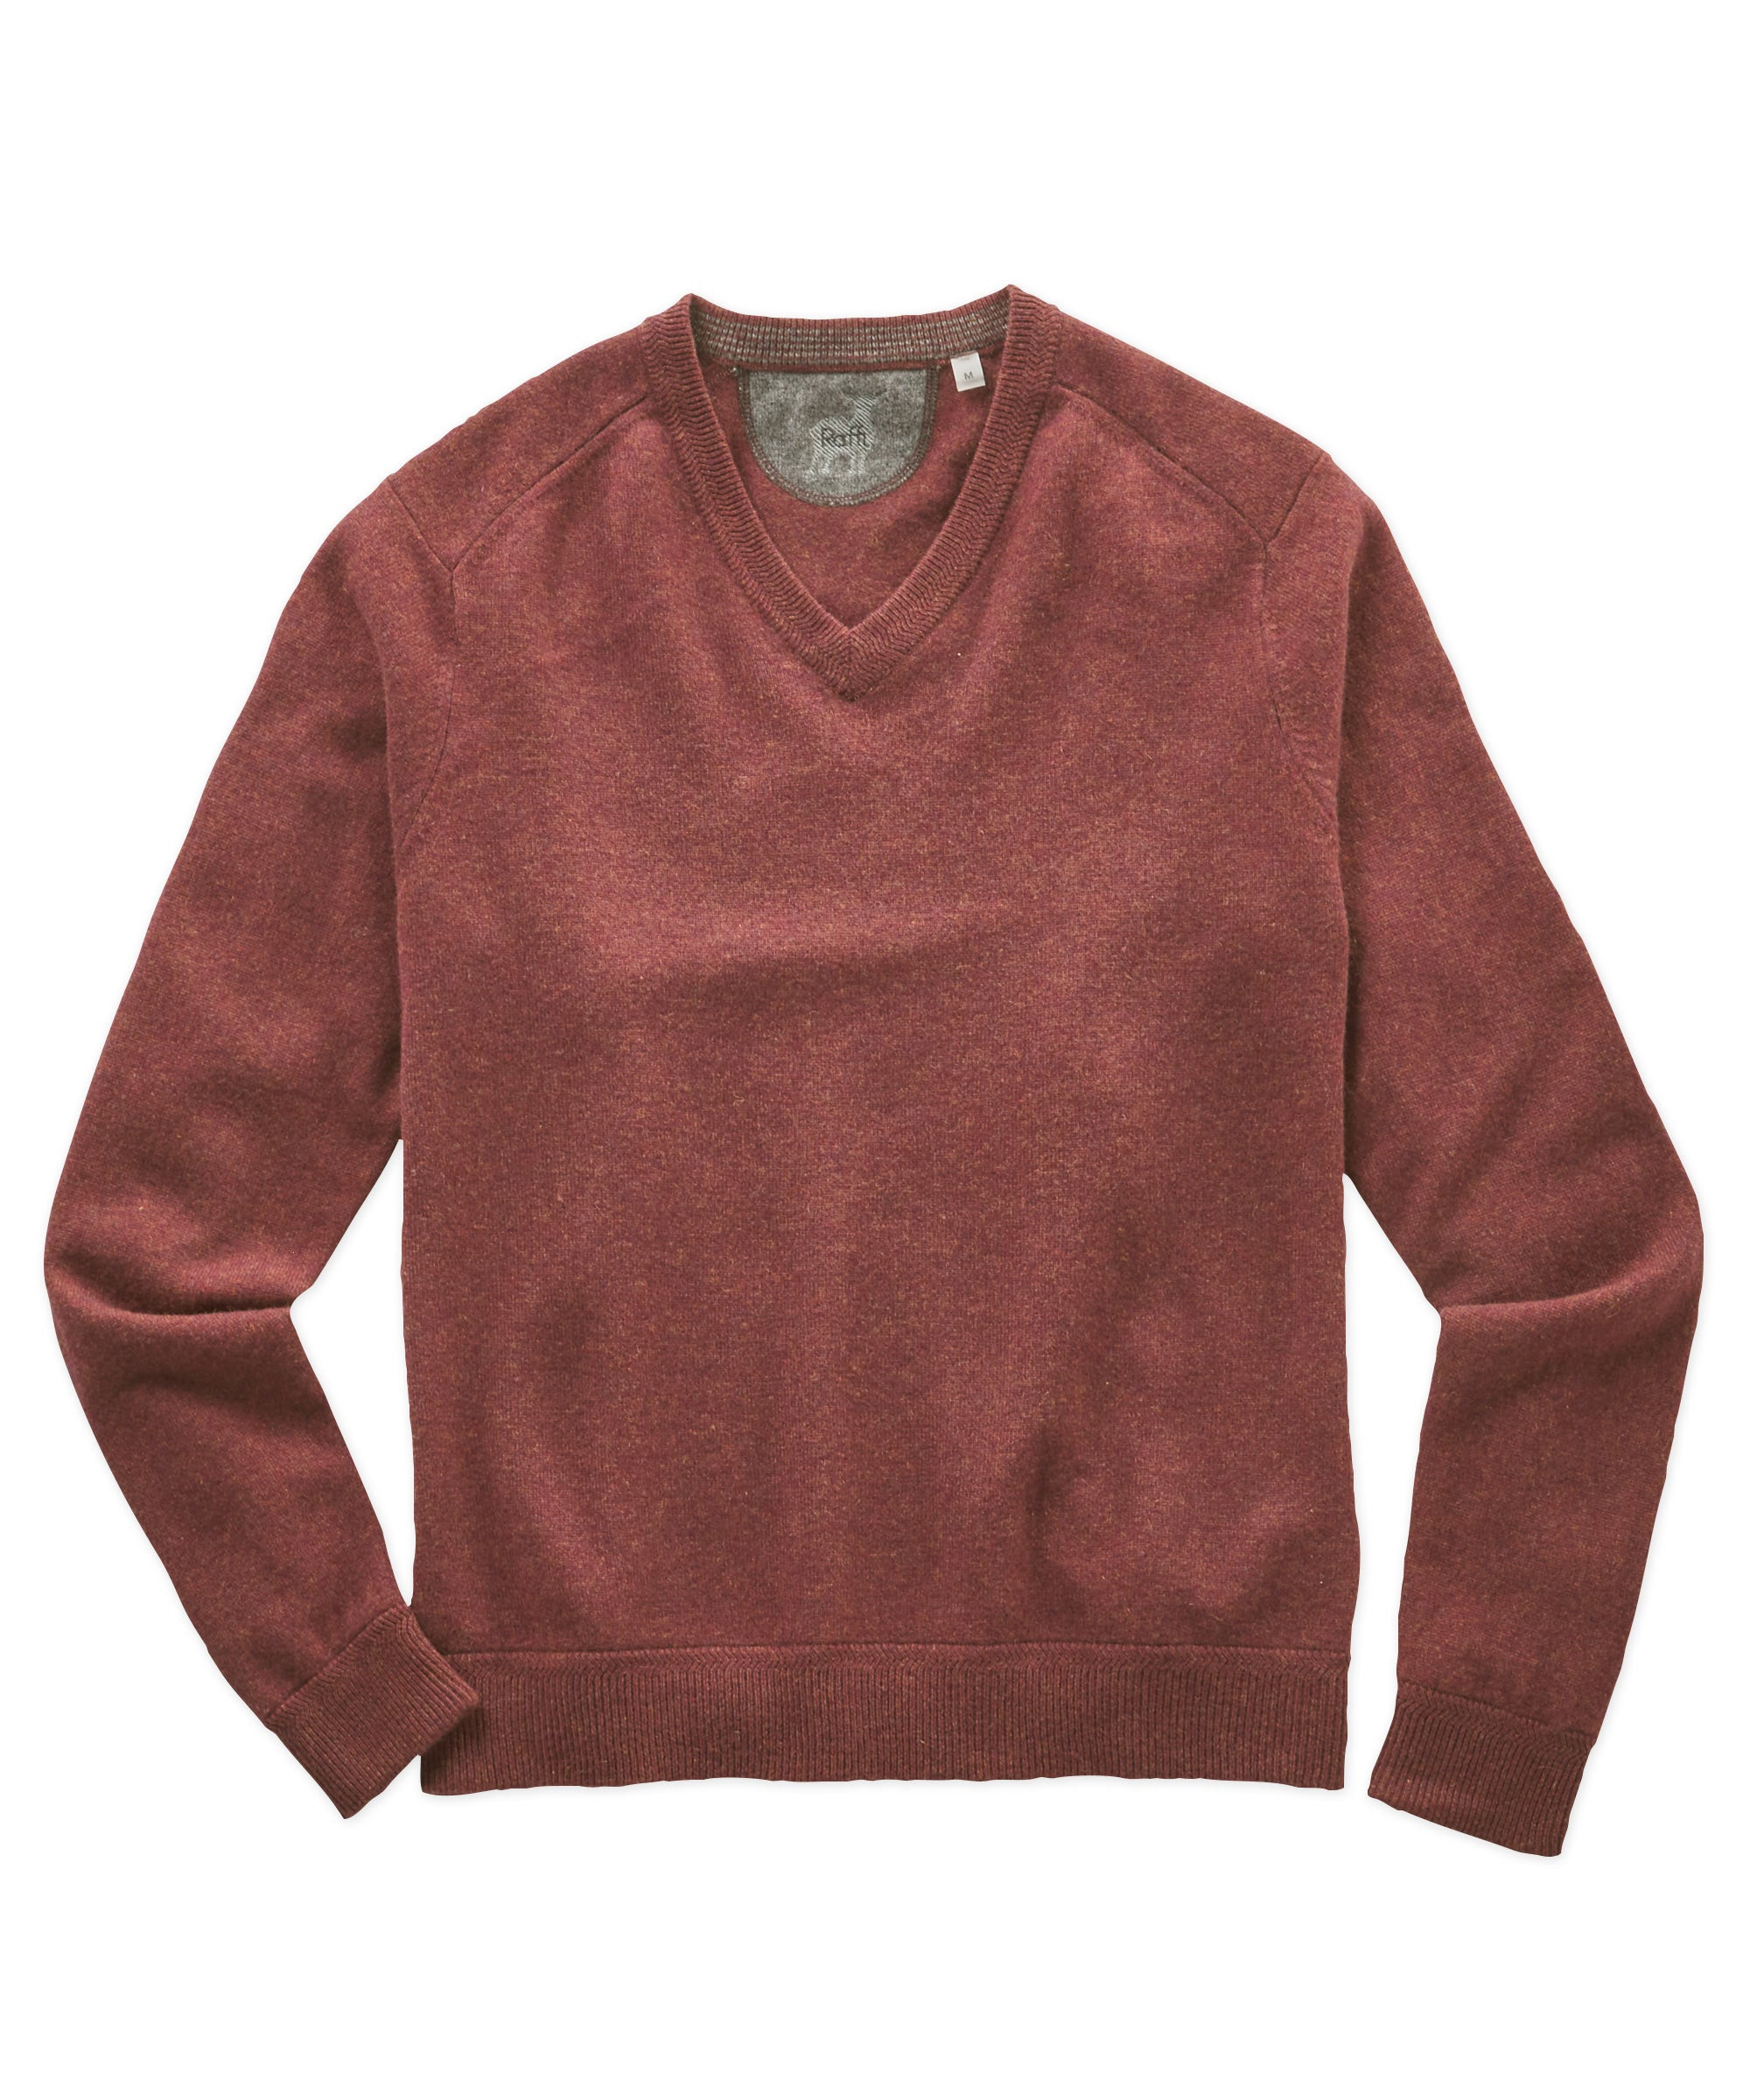 Raffi Cashmere V-neck Sweater